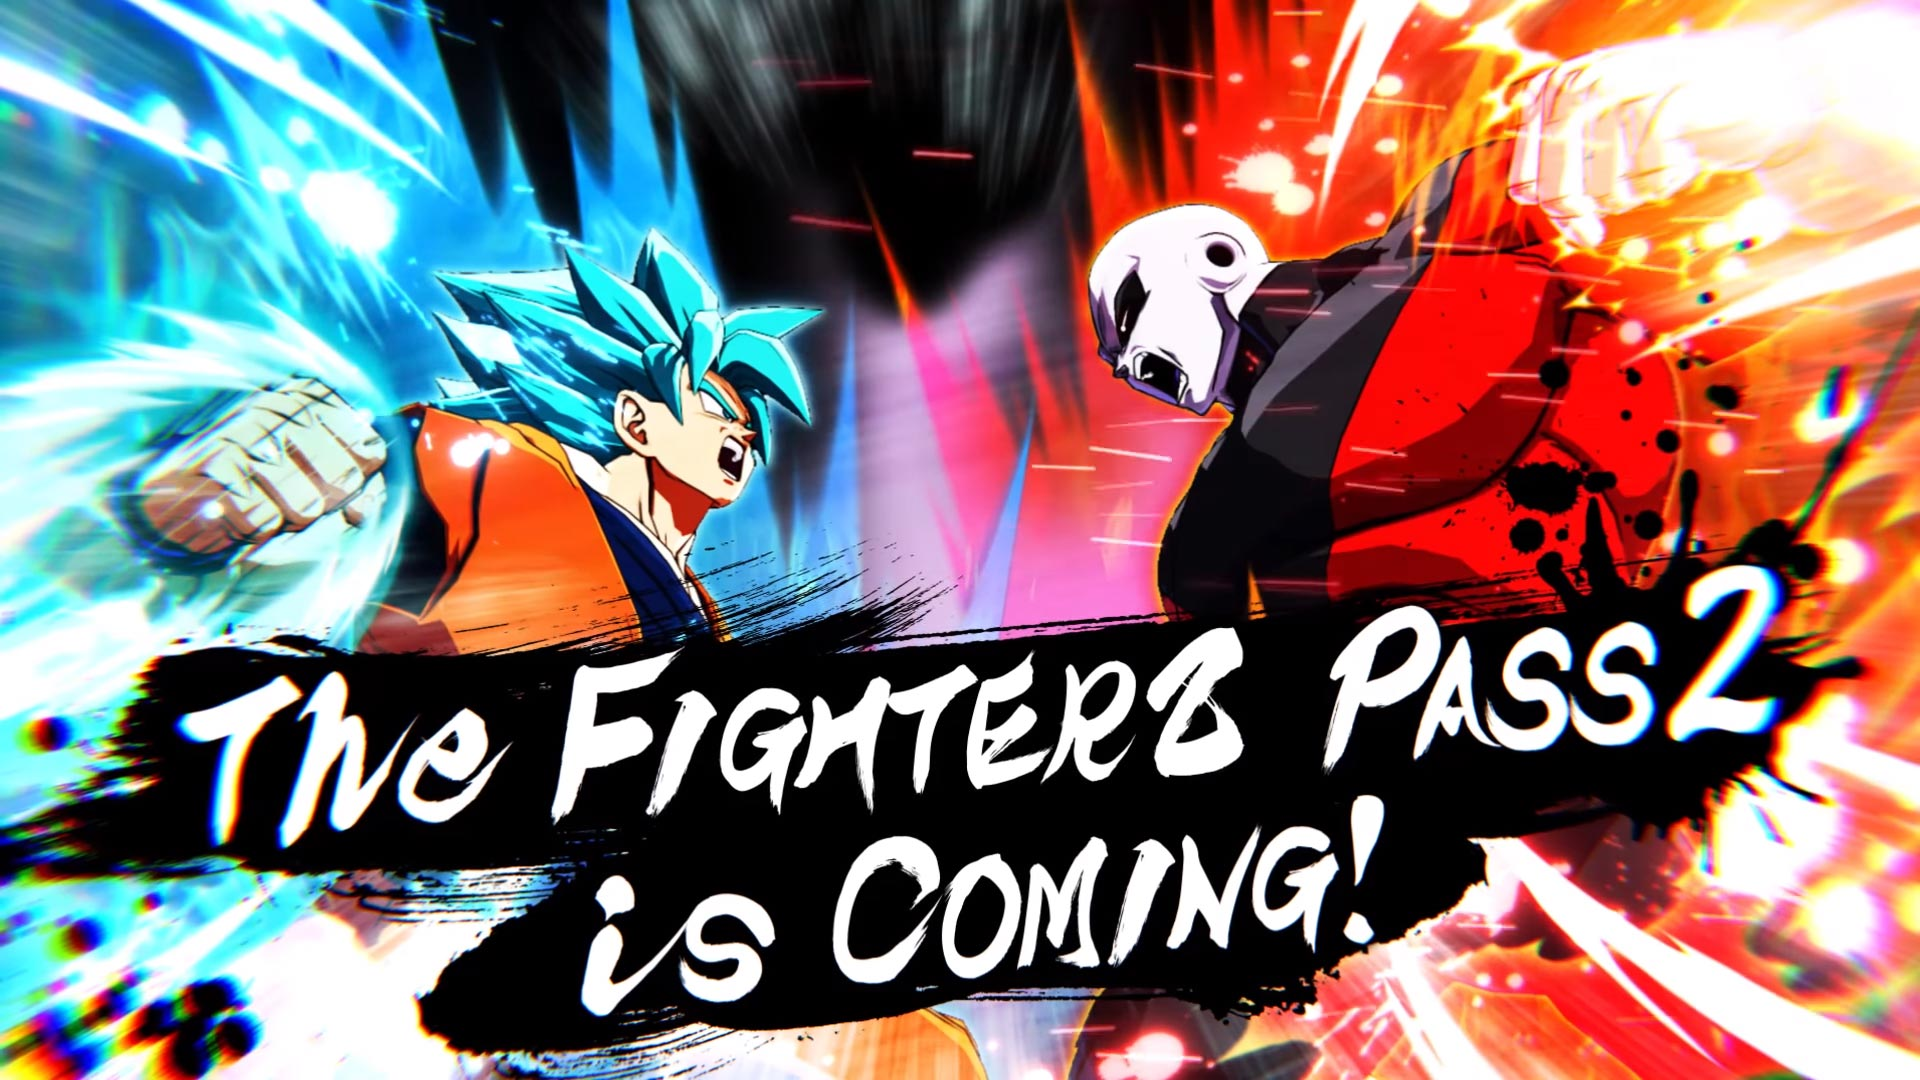 Dragon Ball FighterZ Season 2 6 out of 27 image gallery